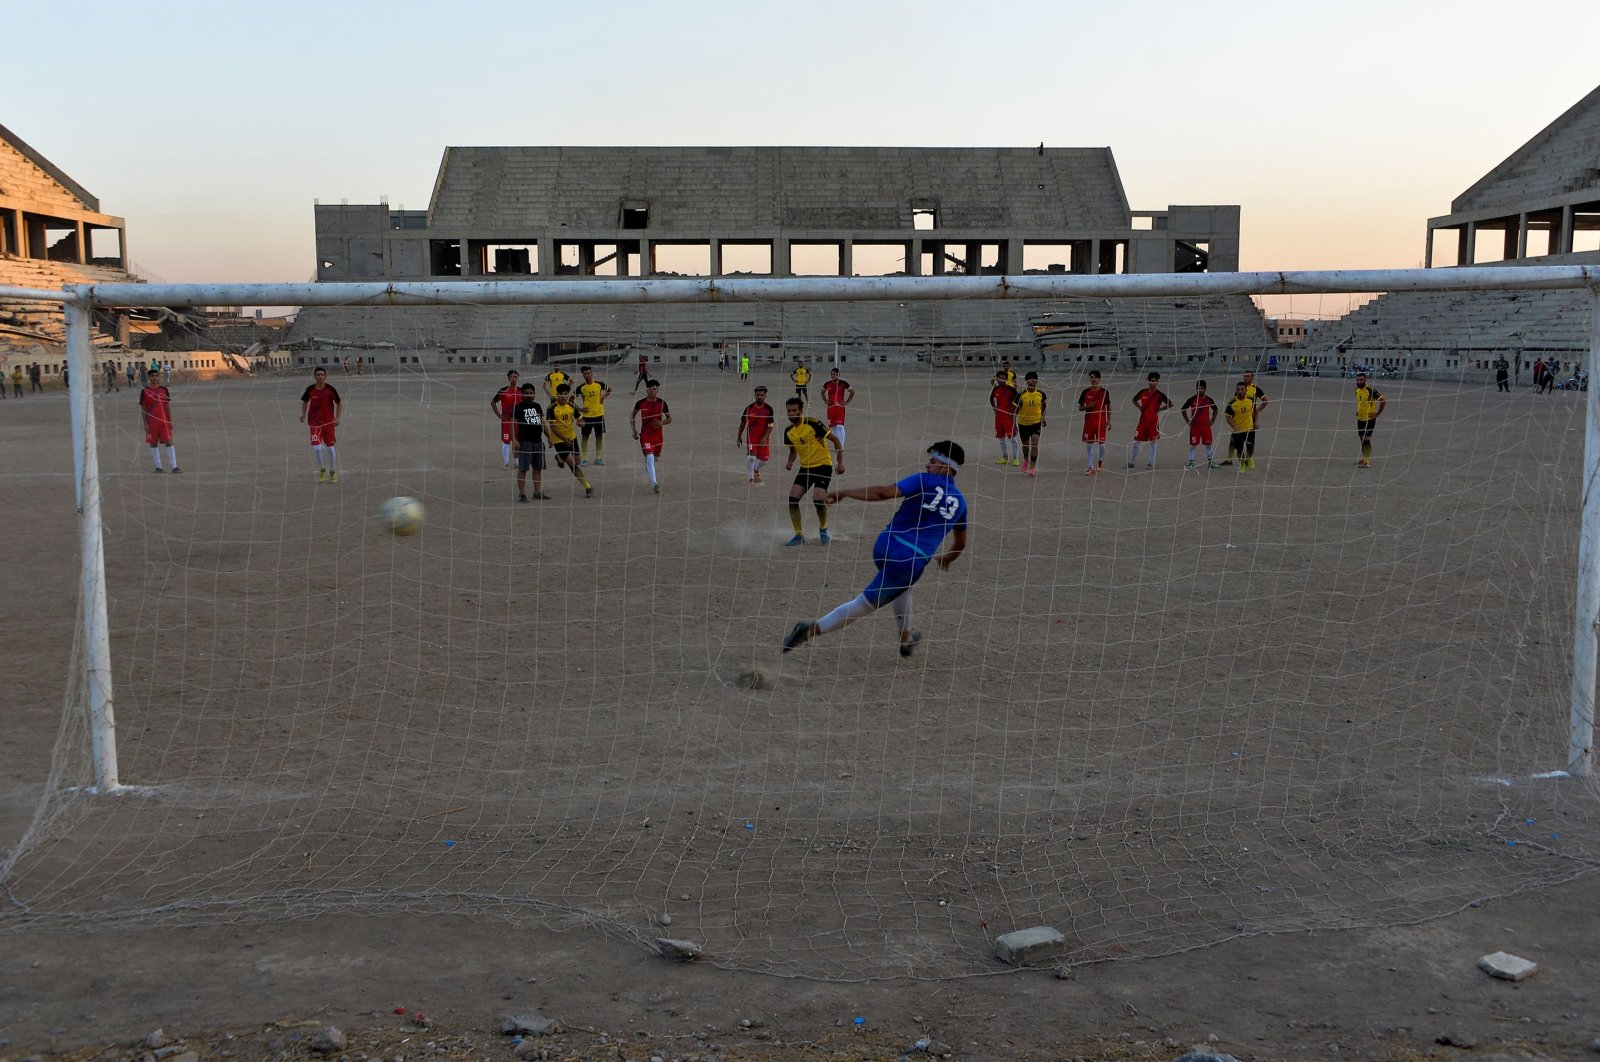 Players of al-Mosul FC practice at the stadium, in Mosul, Iraq, Oct. 22, 2020. (AFP Photo)